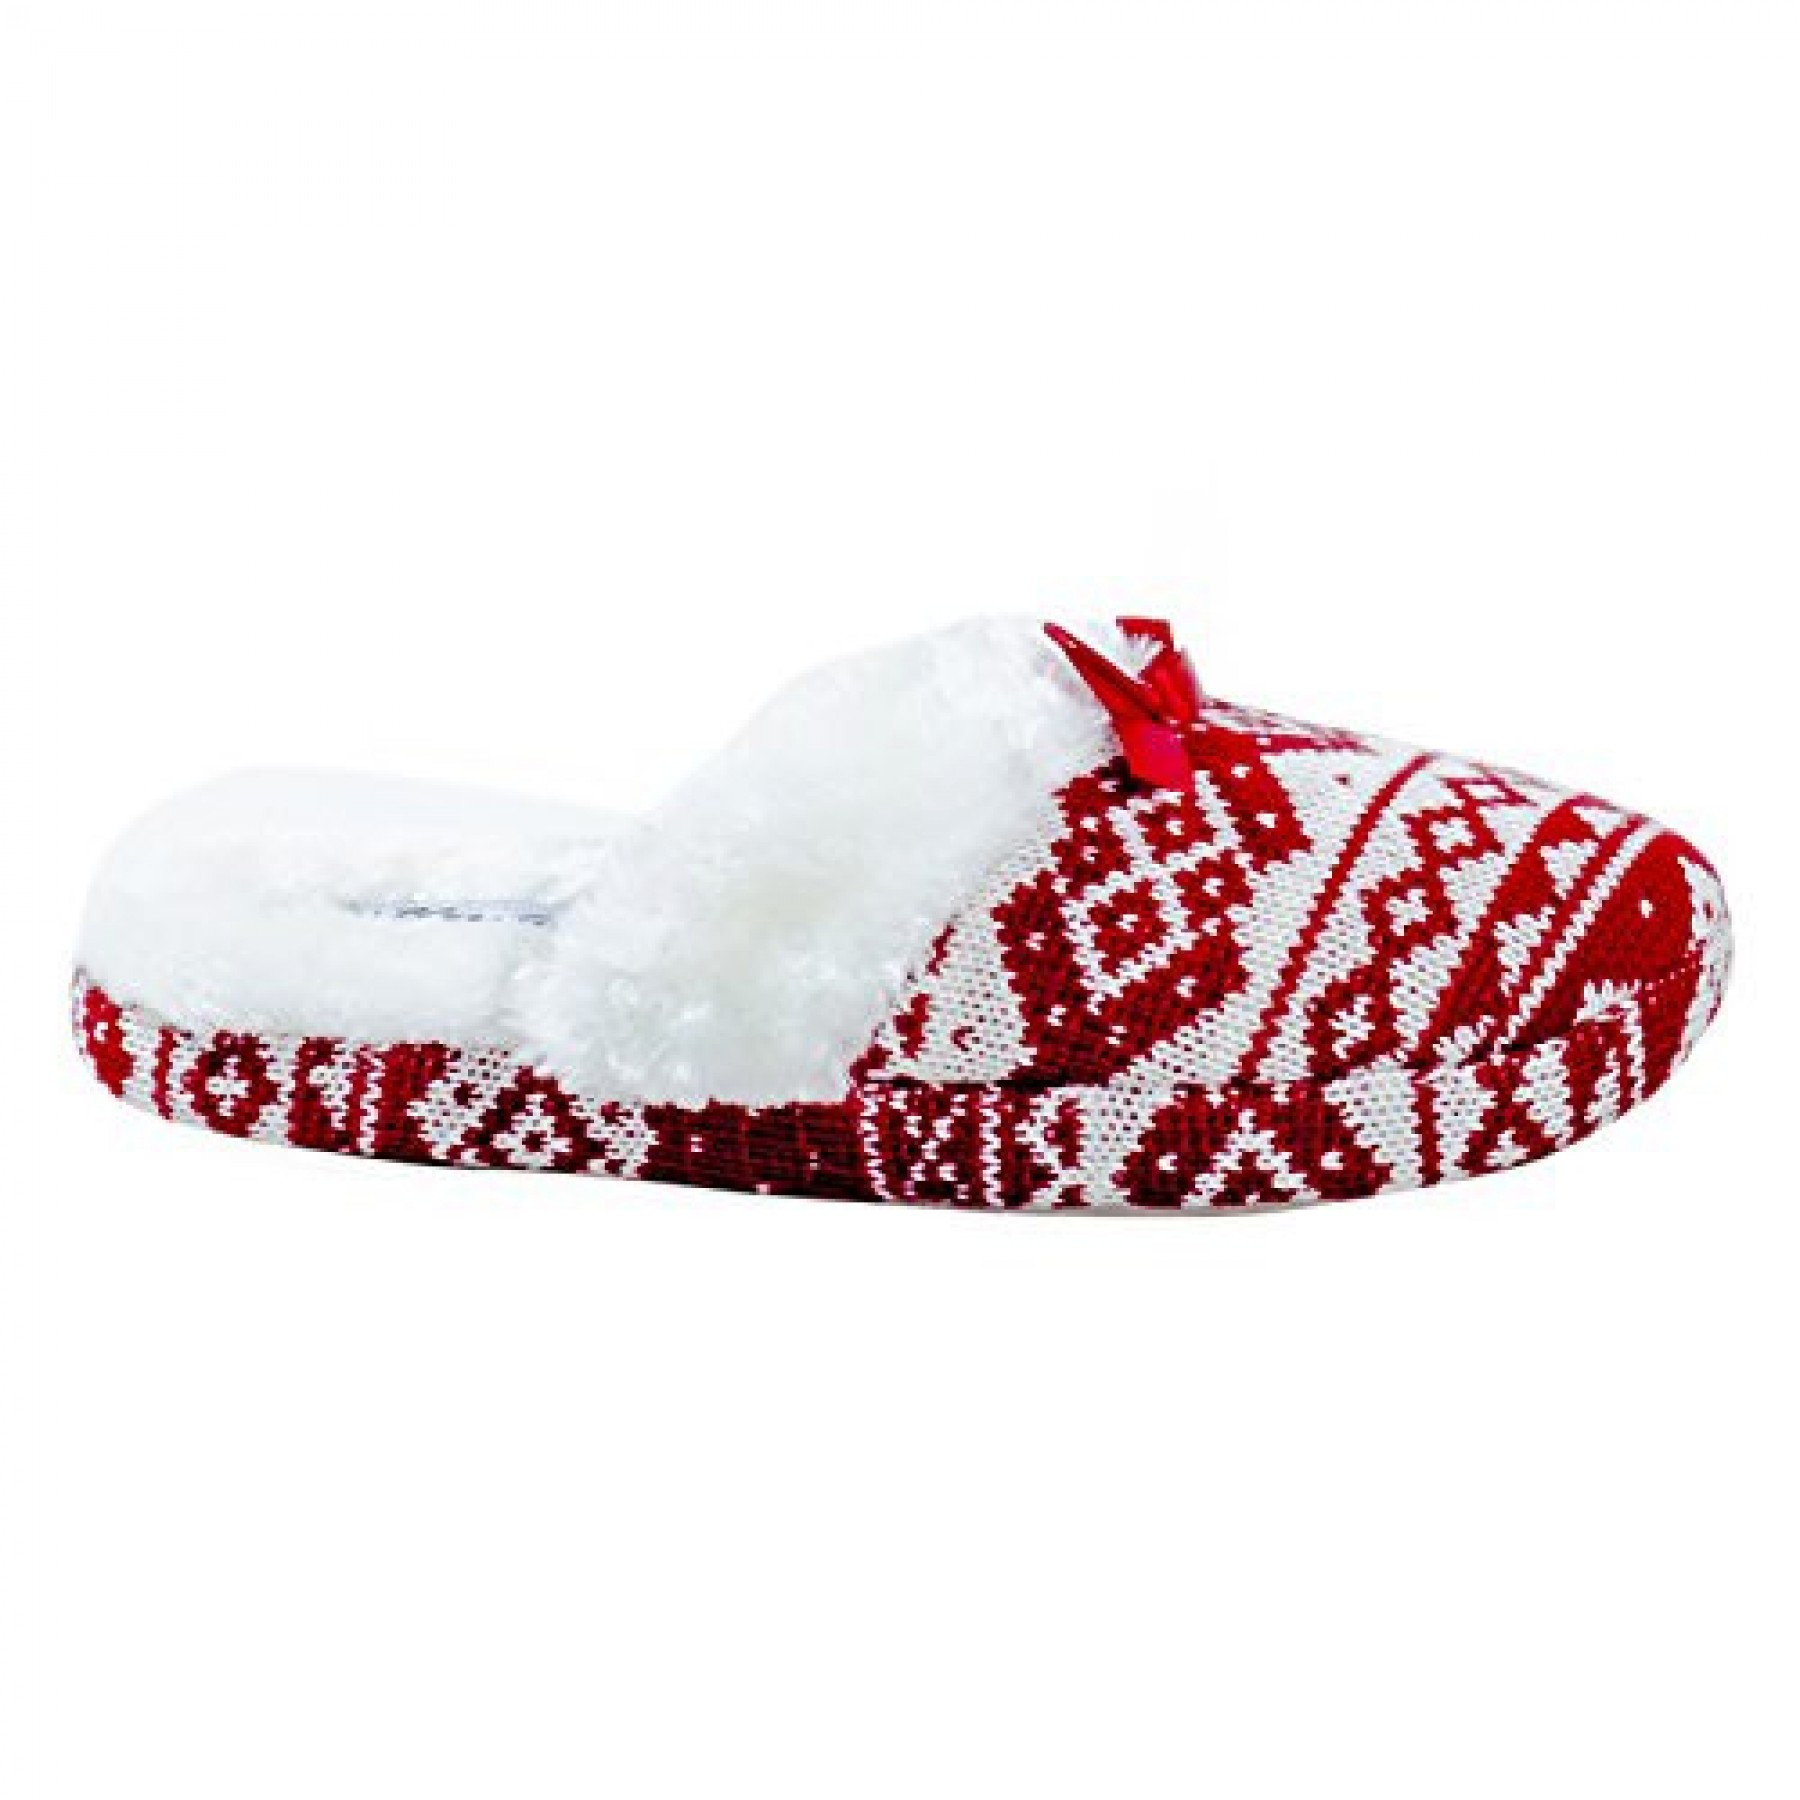 Women's Red White Settee Manmade Fuzzy House Slipper with Accent Bow